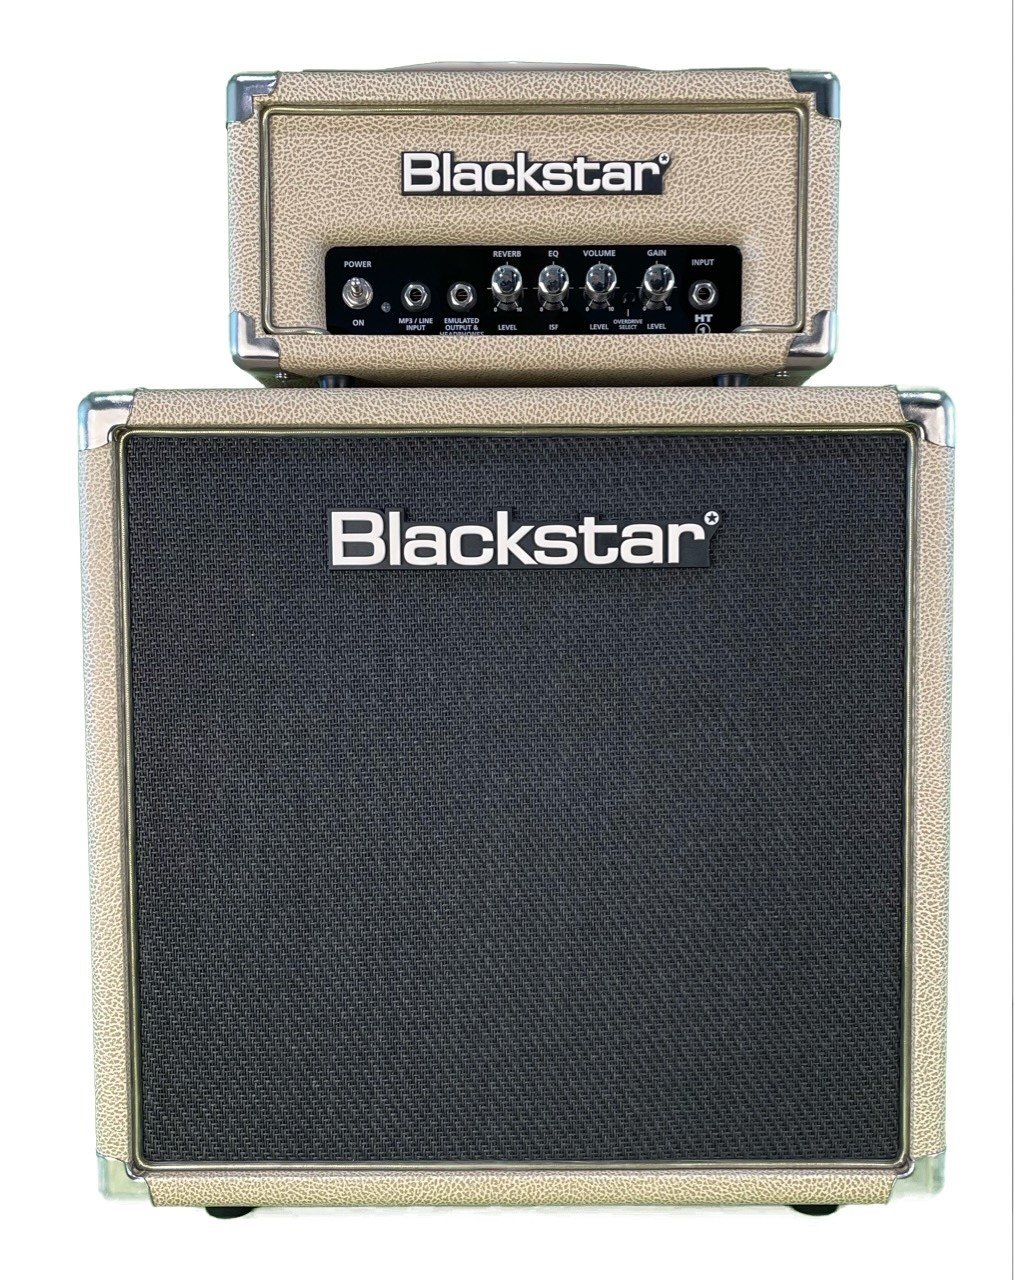 Blackstar HT-1RH and HT-112 Guitar Amplifier Head and Cabinet  in Excellent Condition